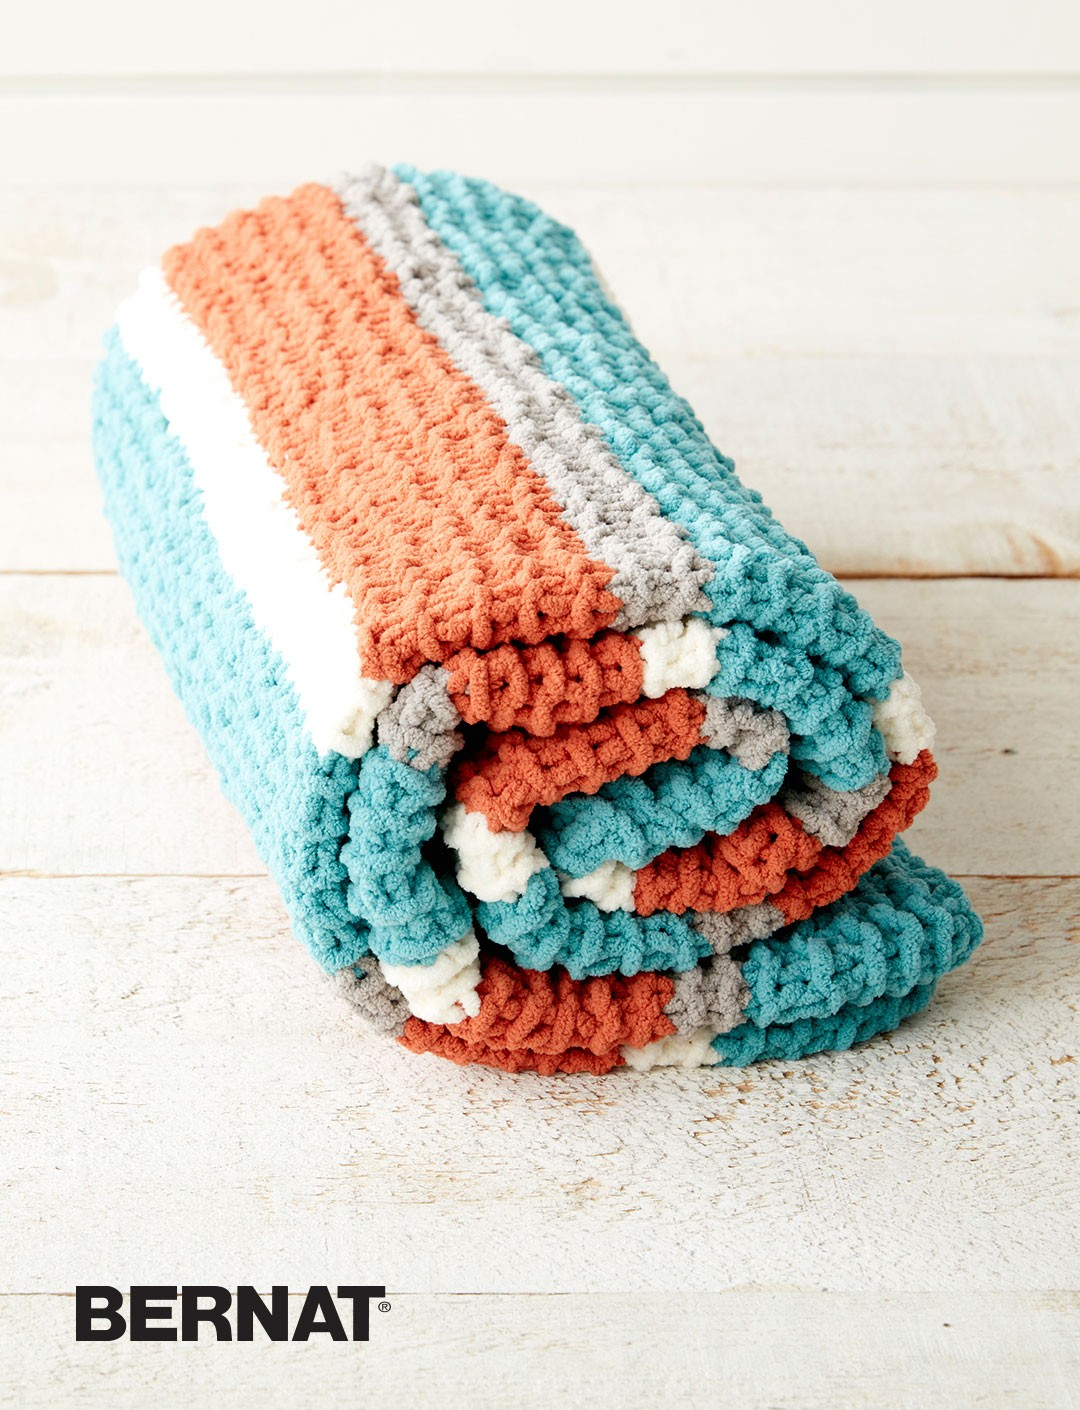 Knitting Patterns Bernat Blanket Yarn : Bernat Get Fresh Throw, Knit Pattern Yarnspirations